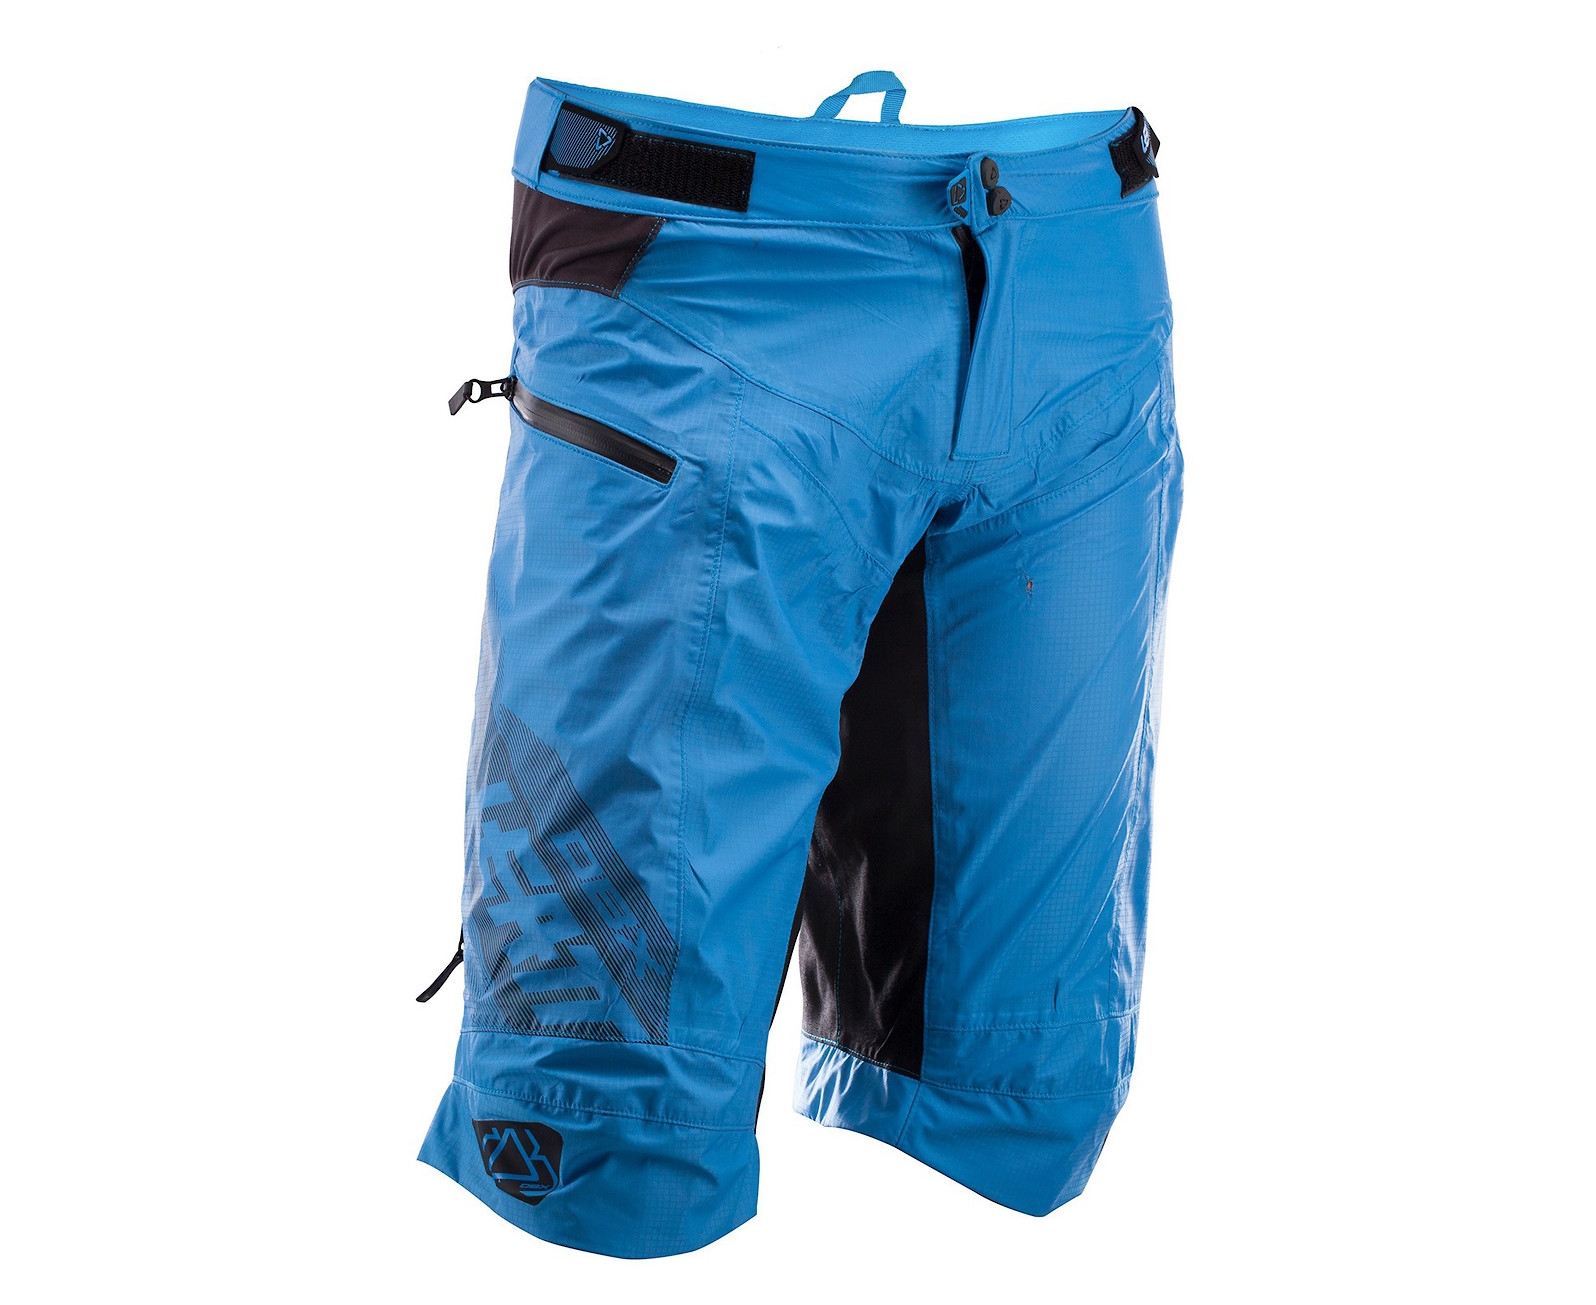 Leatt DBX 5.0 Shorts (blue)